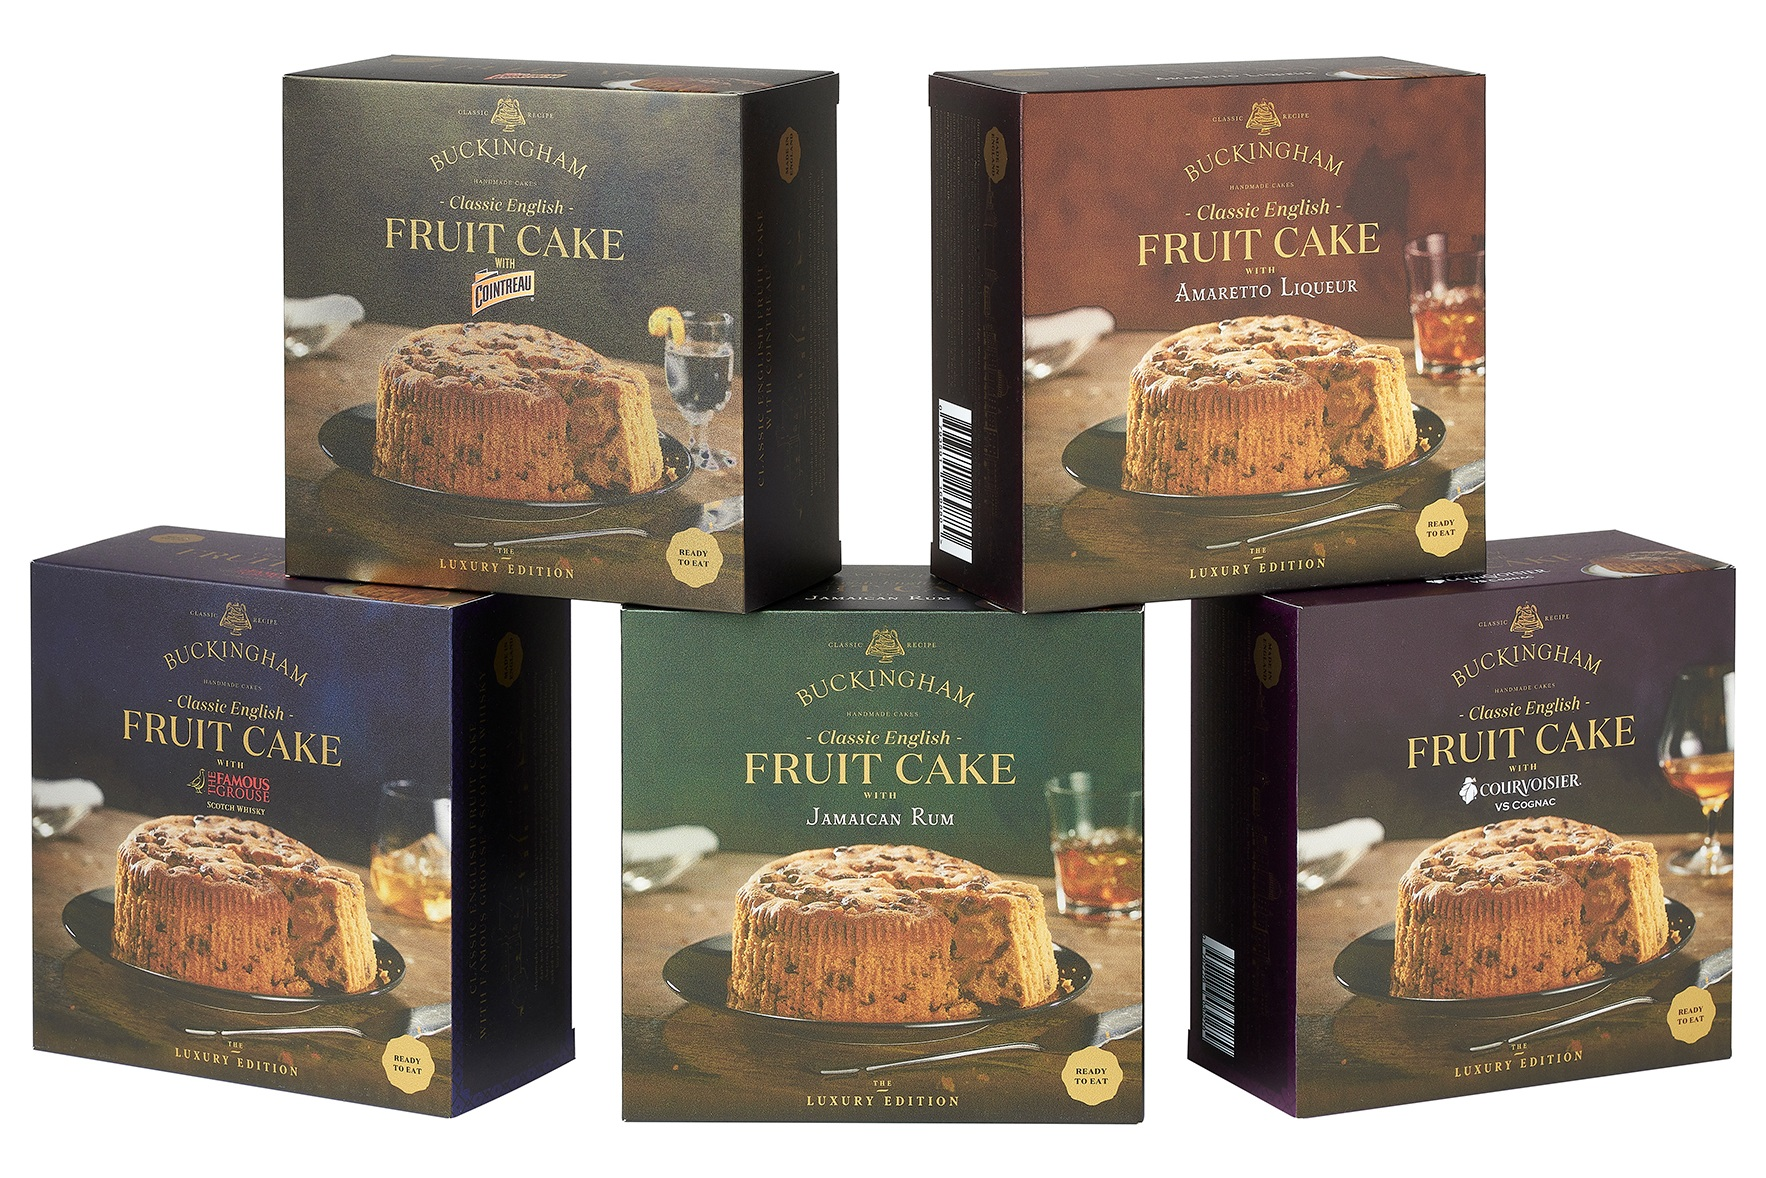 May 2019 - Proofs of the new packaging arrive at last. These are the culmination of three months work which started at ISM where we showed the concept of putting the tins inside beautiful cartons to enhance their gift appeal. The response was overwhelmingly positive and the final designs are looking very luxurious!